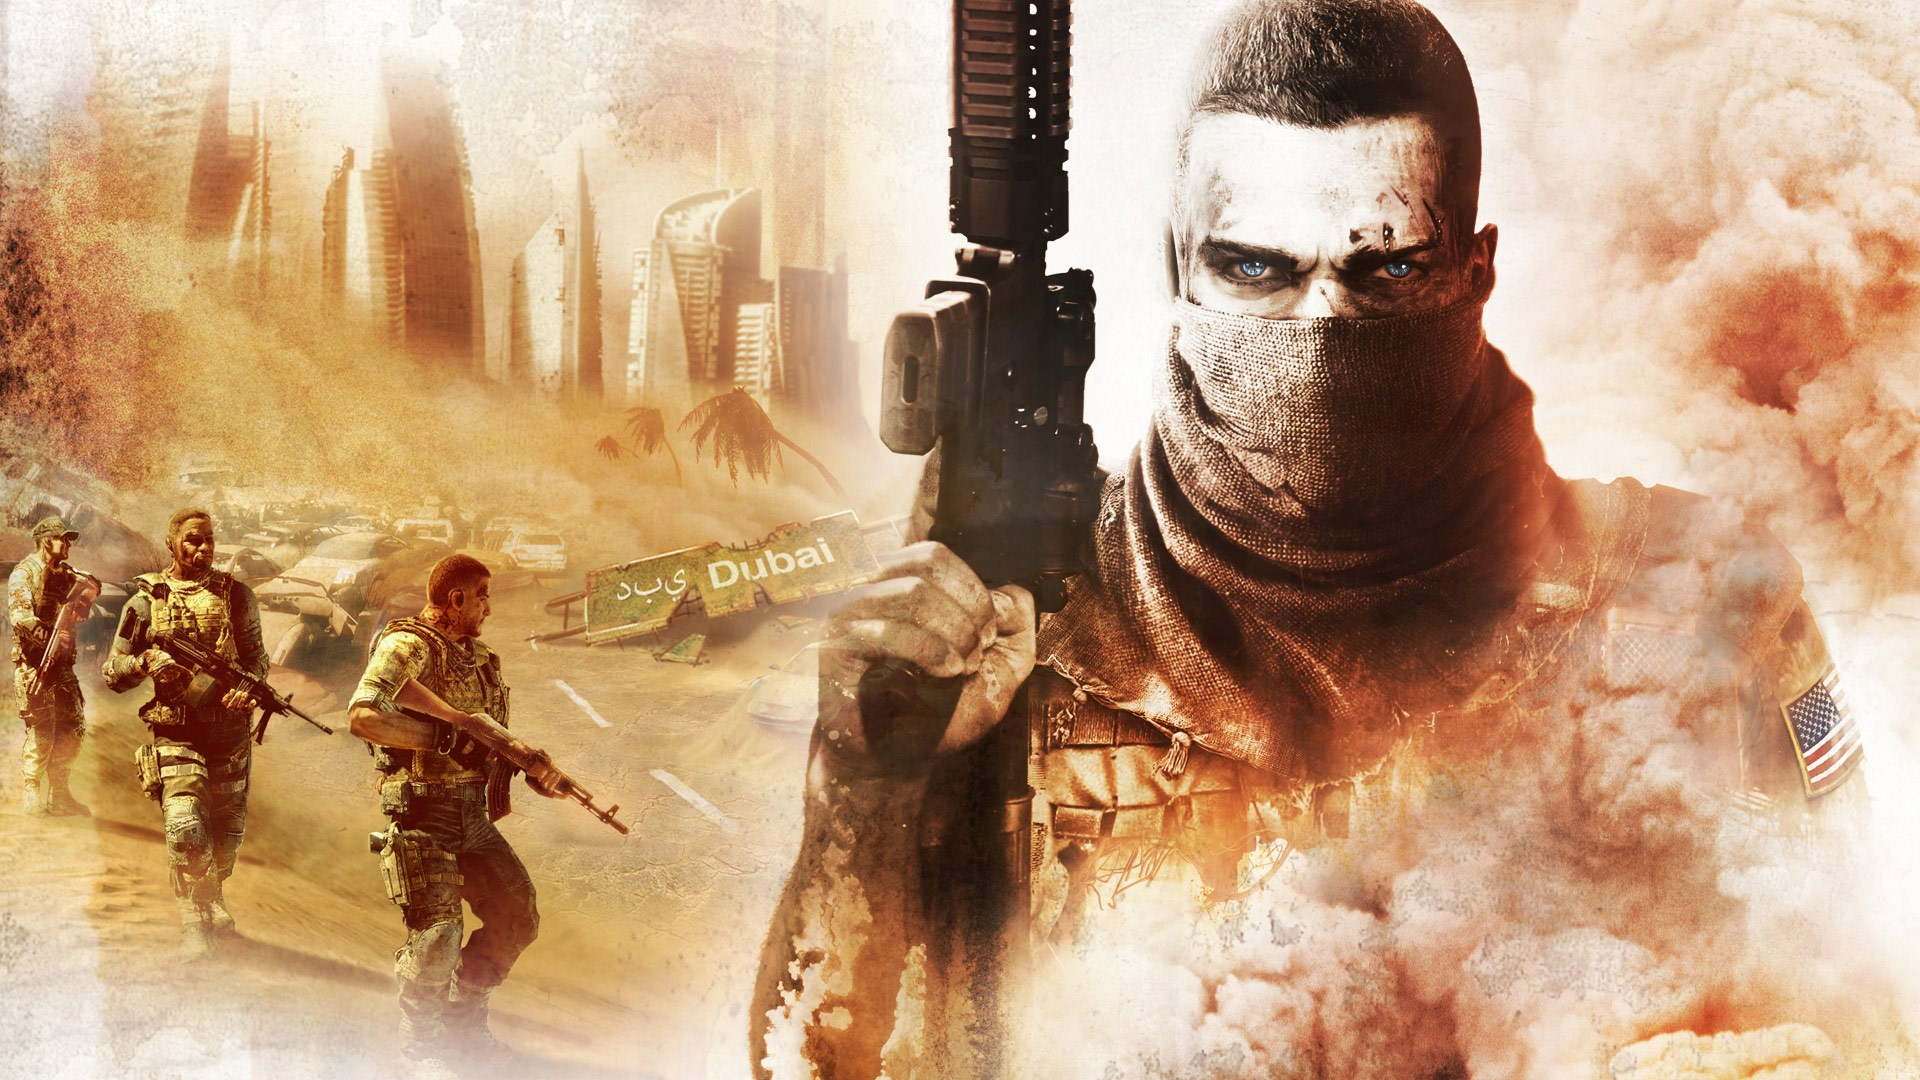 Spec Ops: The Line Creator Teams With Nine Inch Nails Guitarist for Cosmic Horror Game